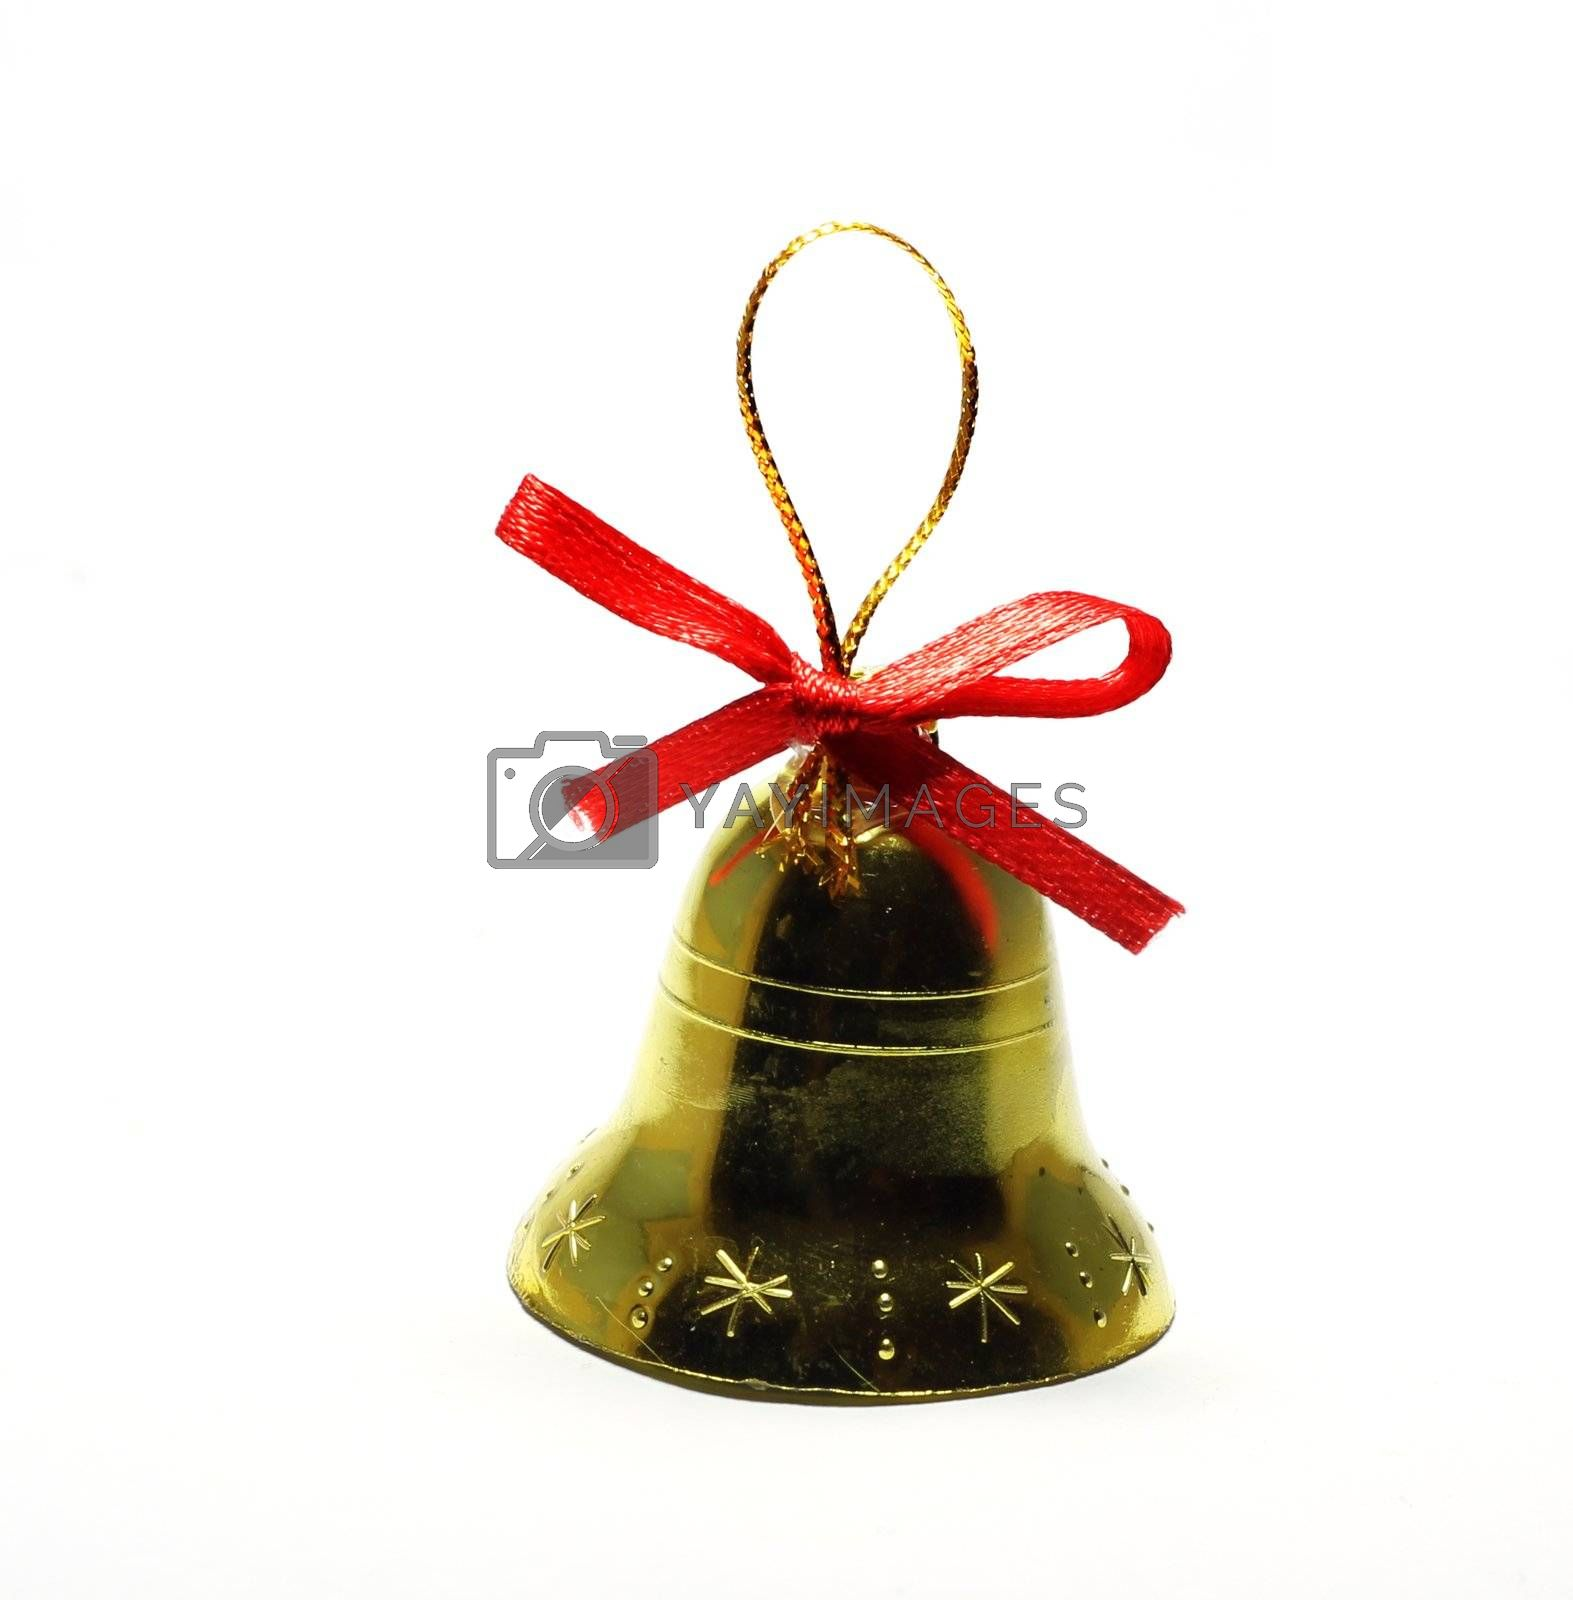 Christmas bell toy isolated on white background